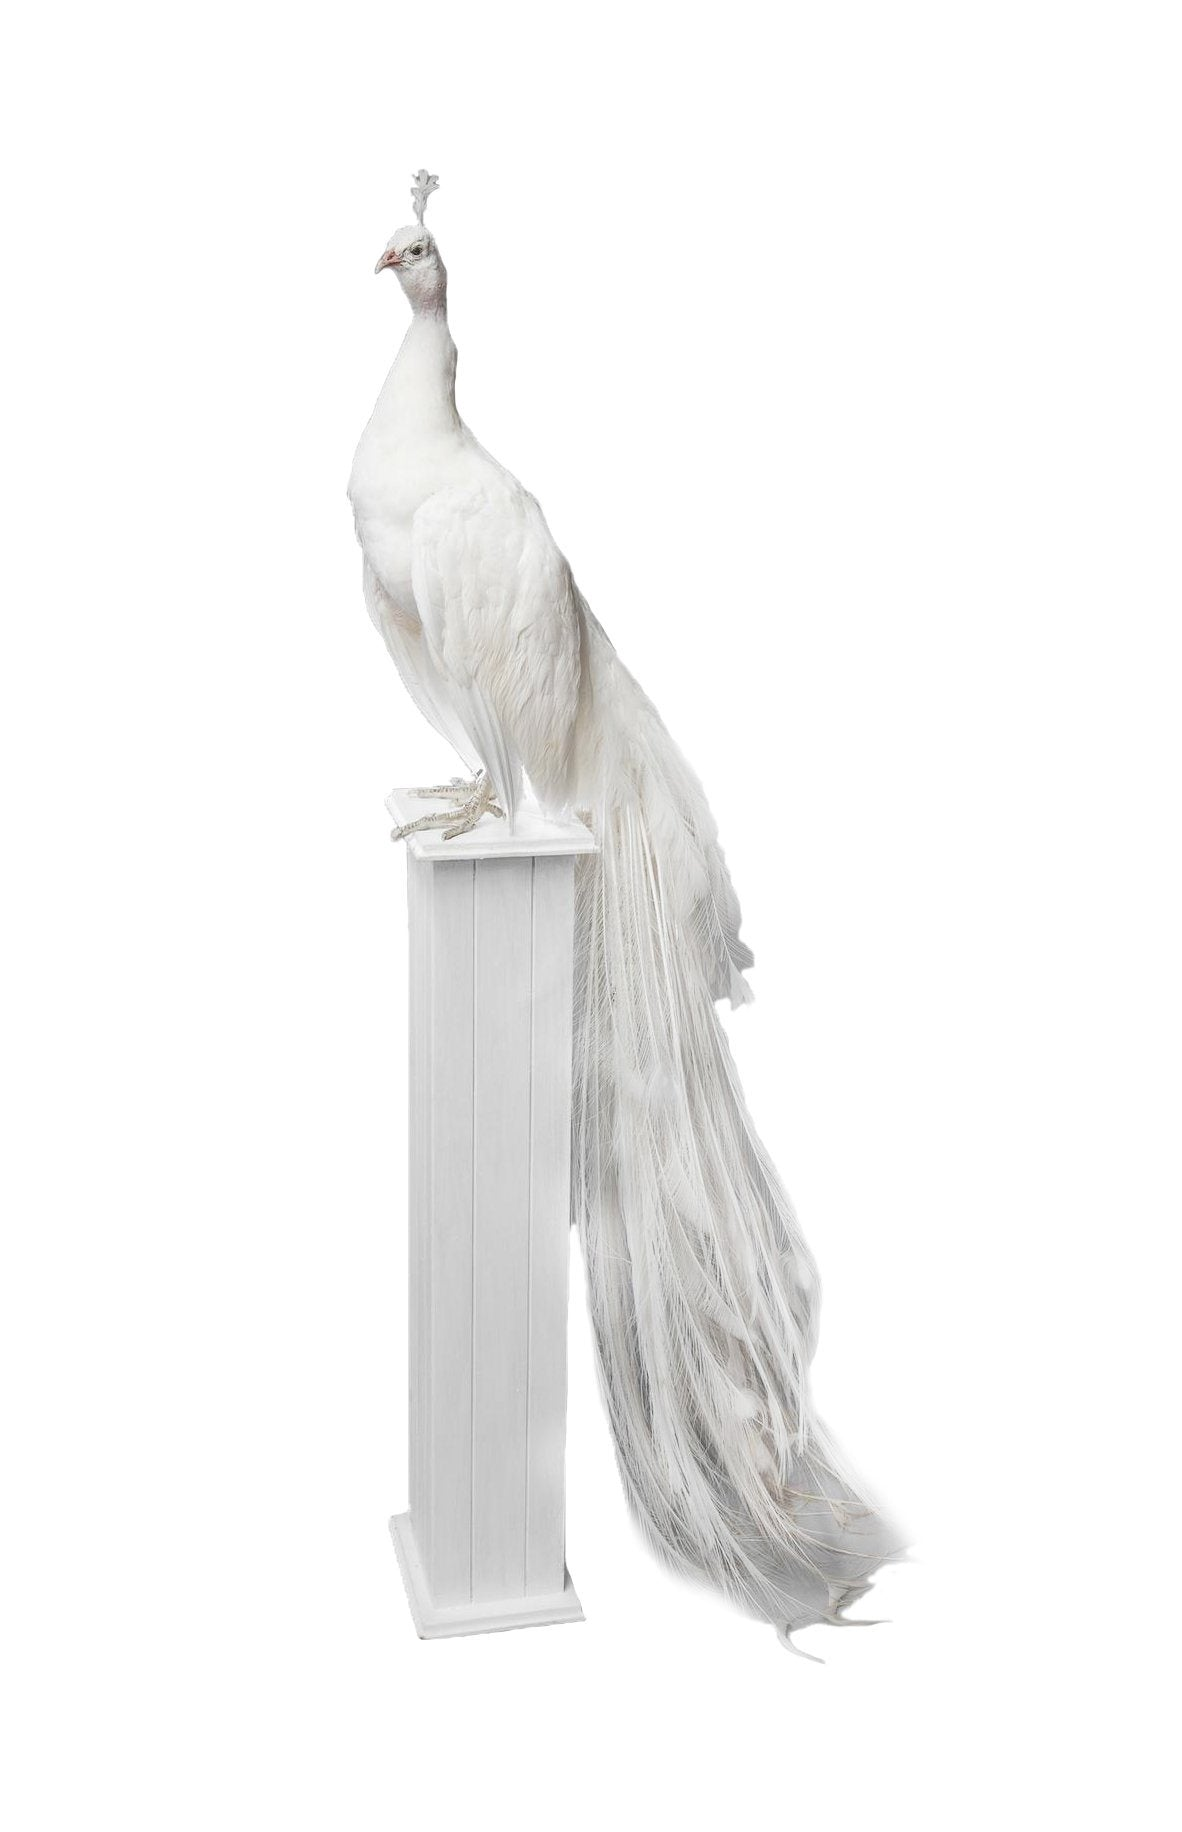 21st Century Taxidermy White Peacock mounted upon a pedestal - A Modern Grand Tour